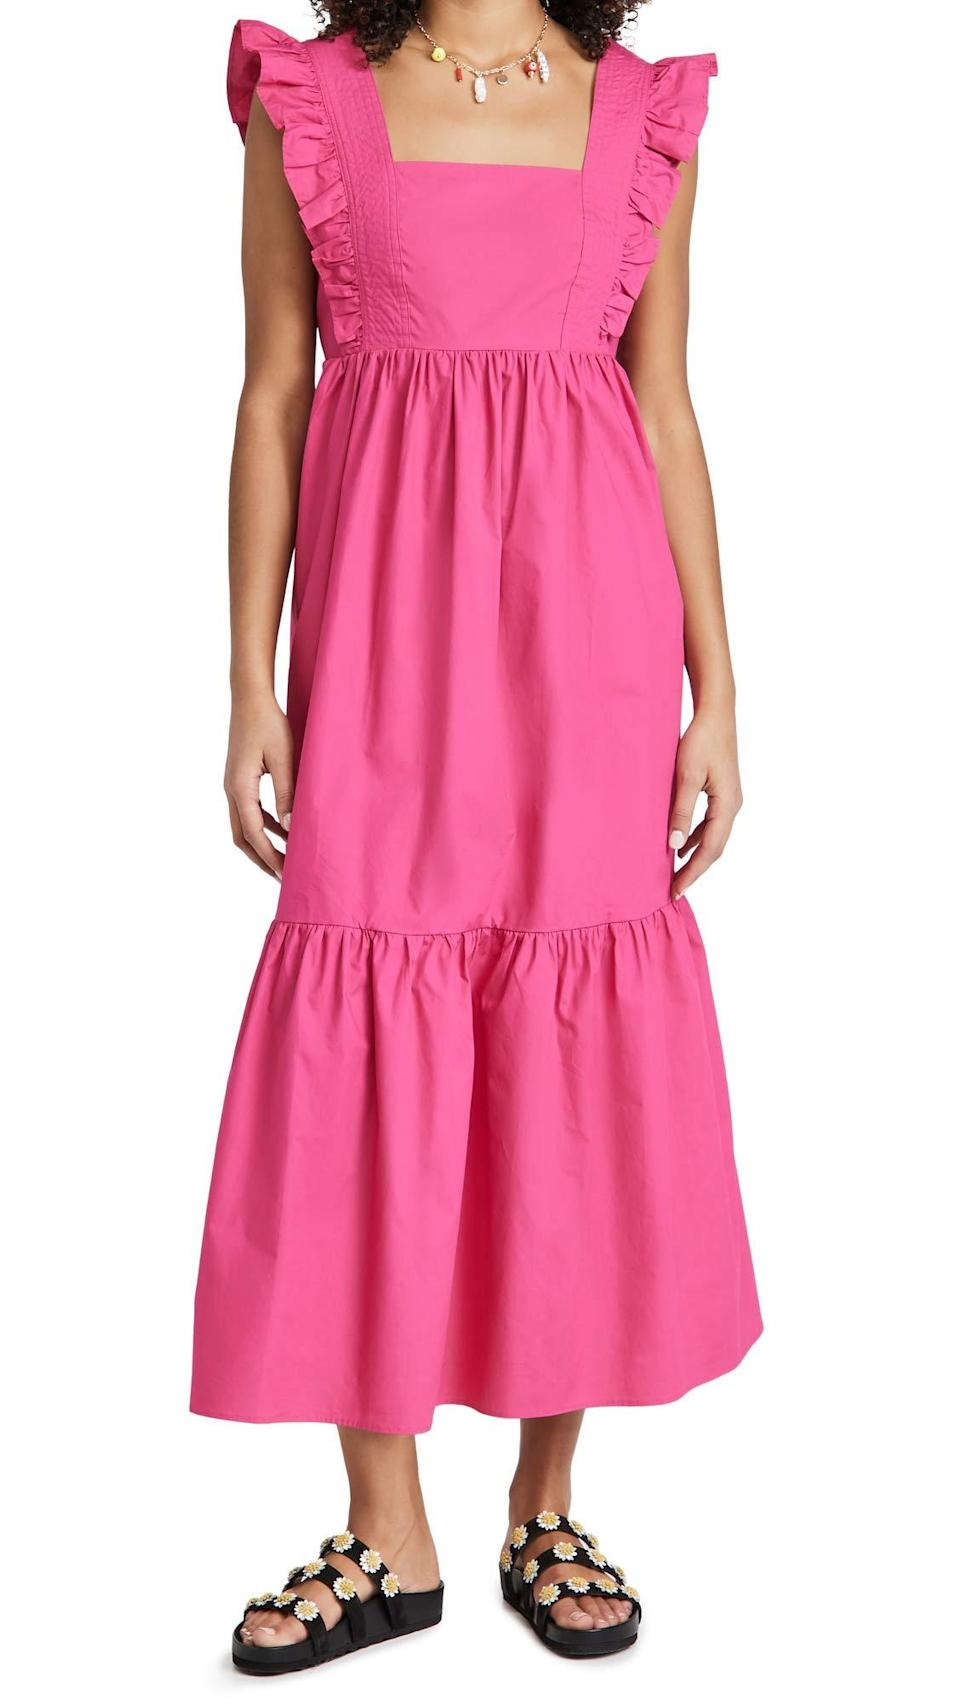 """<h2>Savings On Select Apparel from Shopbop Brands</h2><br>Our favorite destination for summer dresses and accessories is offering some tempting discounts on fluttery, warm-weather-ready options from Free People and ASTR The Label.<br><br><em>Shop Shopbop-curated dresses at <strong><a href=""""https://amzn.to/3gTBPAU"""" rel=""""nofollow noopener"""" target=""""_blank"""" data-ylk=""""slk:Amazon"""" class=""""link rapid-noclick-resp"""">Amazon</a></strong></em><br><br><strong>OPT</strong> Passion Dress, $, available at <a href=""""https://amzn.to/3gZYU54"""" rel=""""nofollow noopener"""" target=""""_blank"""" data-ylk=""""slk:Amazon"""" class=""""link rapid-noclick-resp"""">Amazon</a>"""